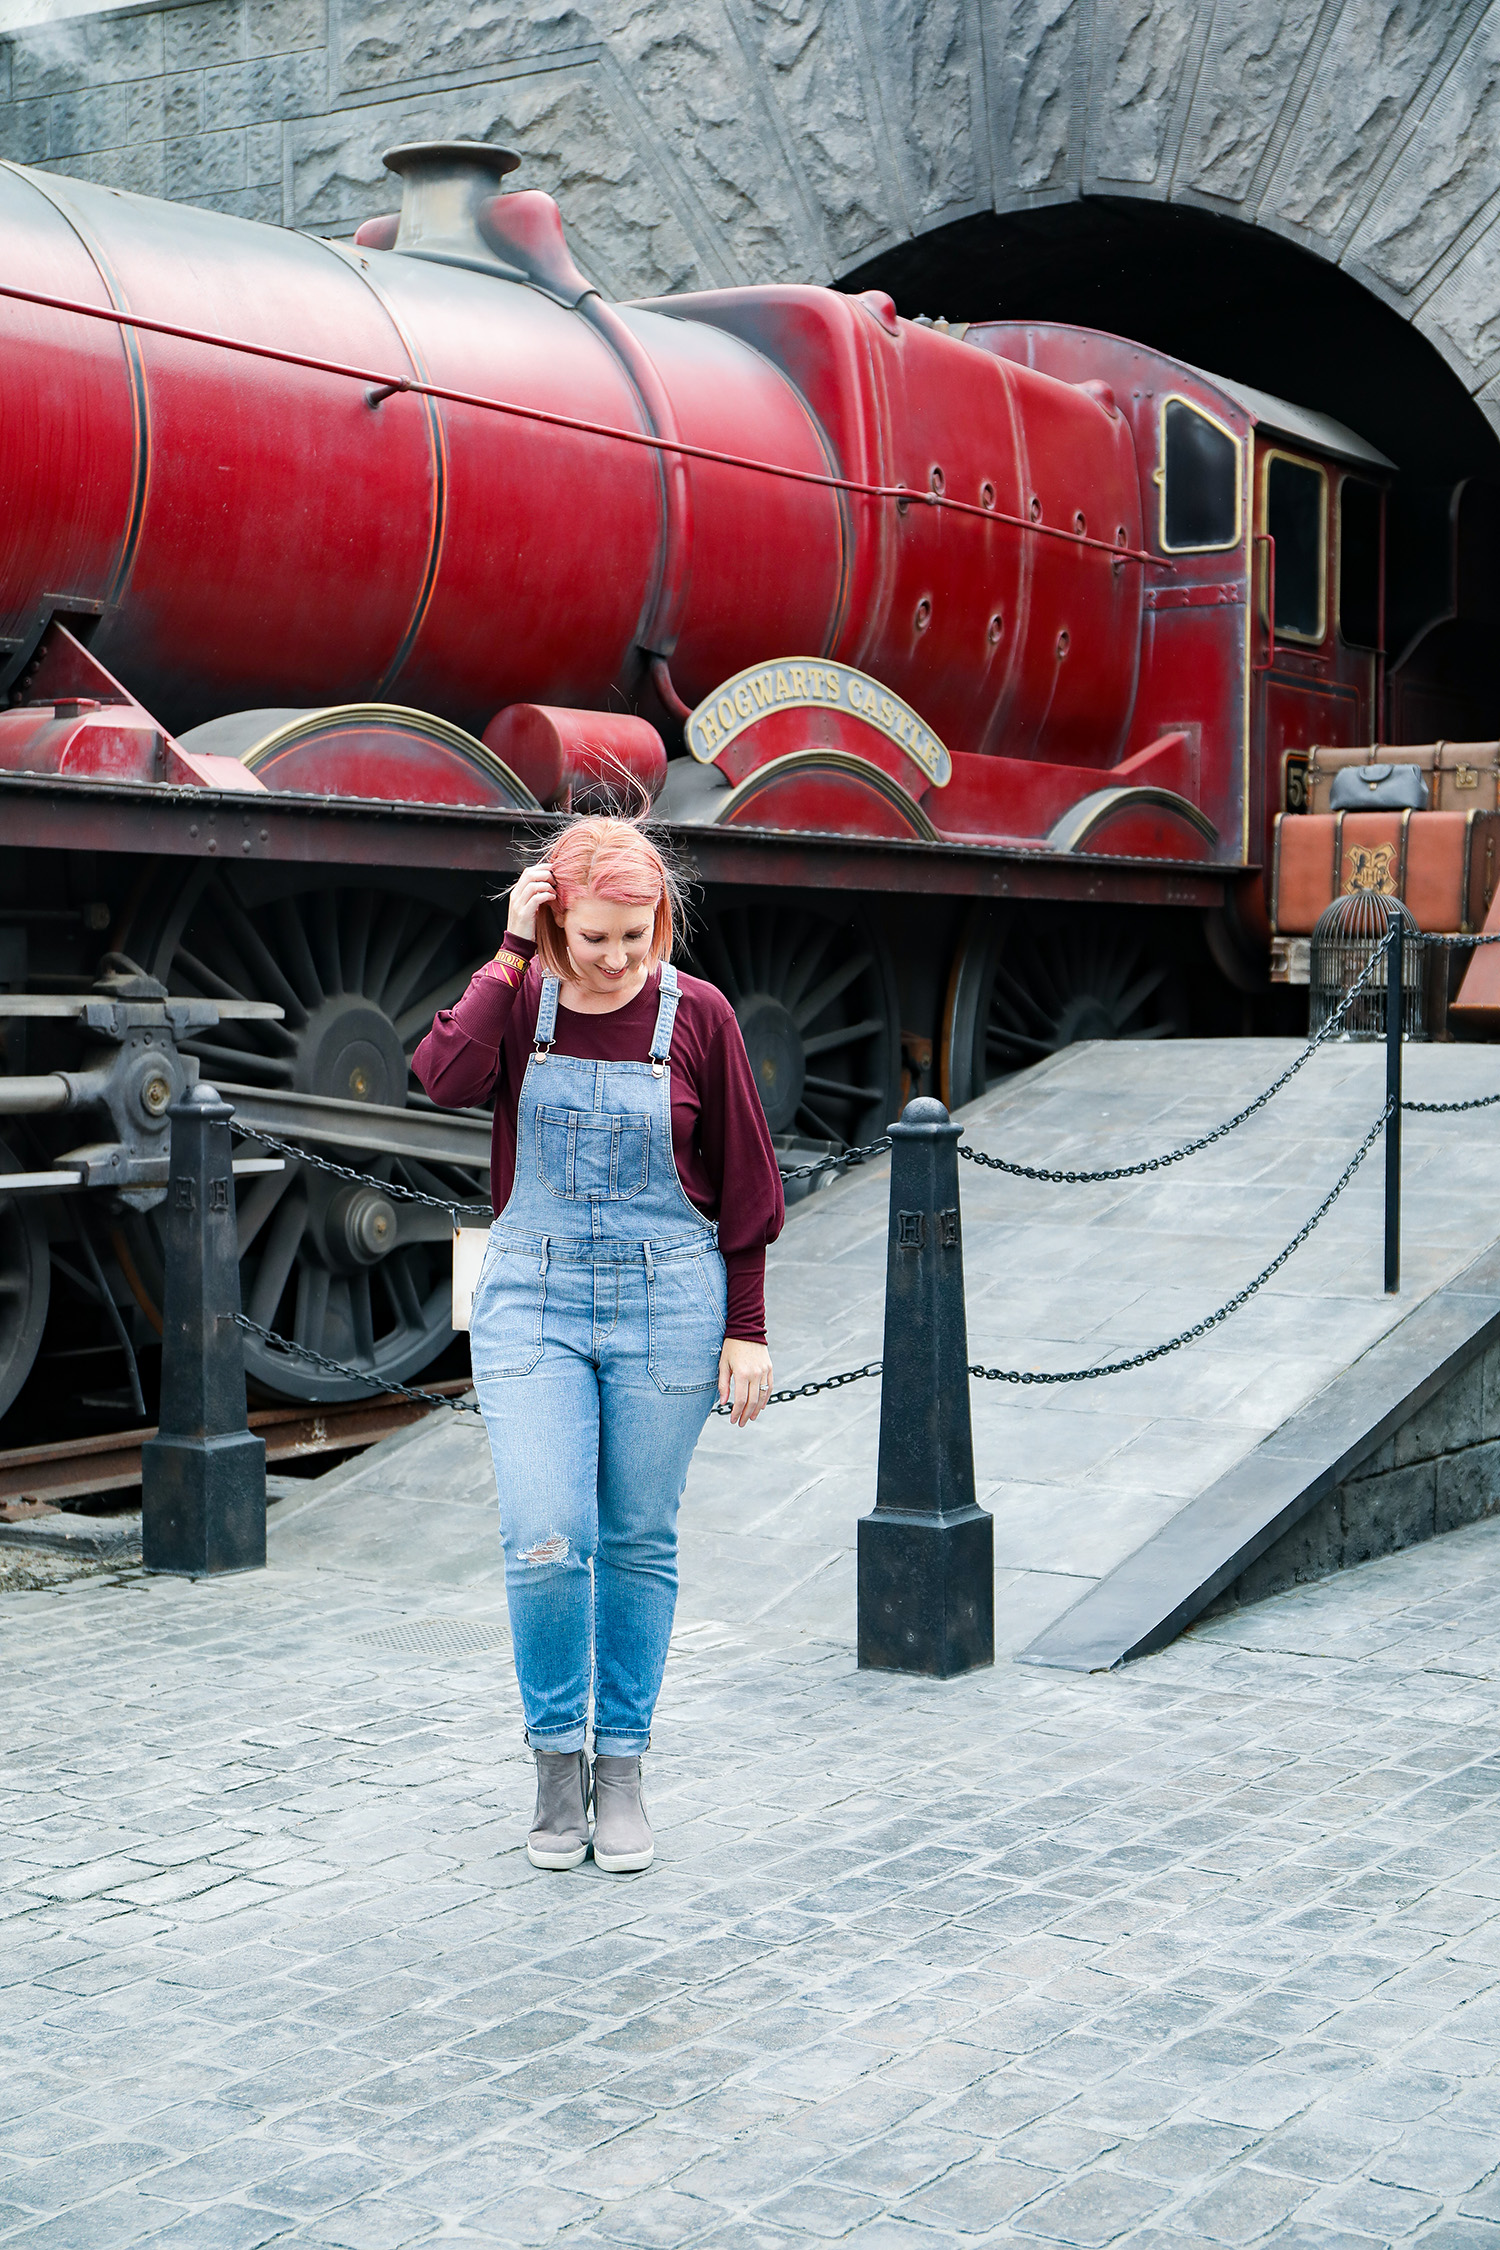 Visiting Harry Potter Land California (aka The Wizarding World of Harry Potter)? These are the BEST places to take pictures!